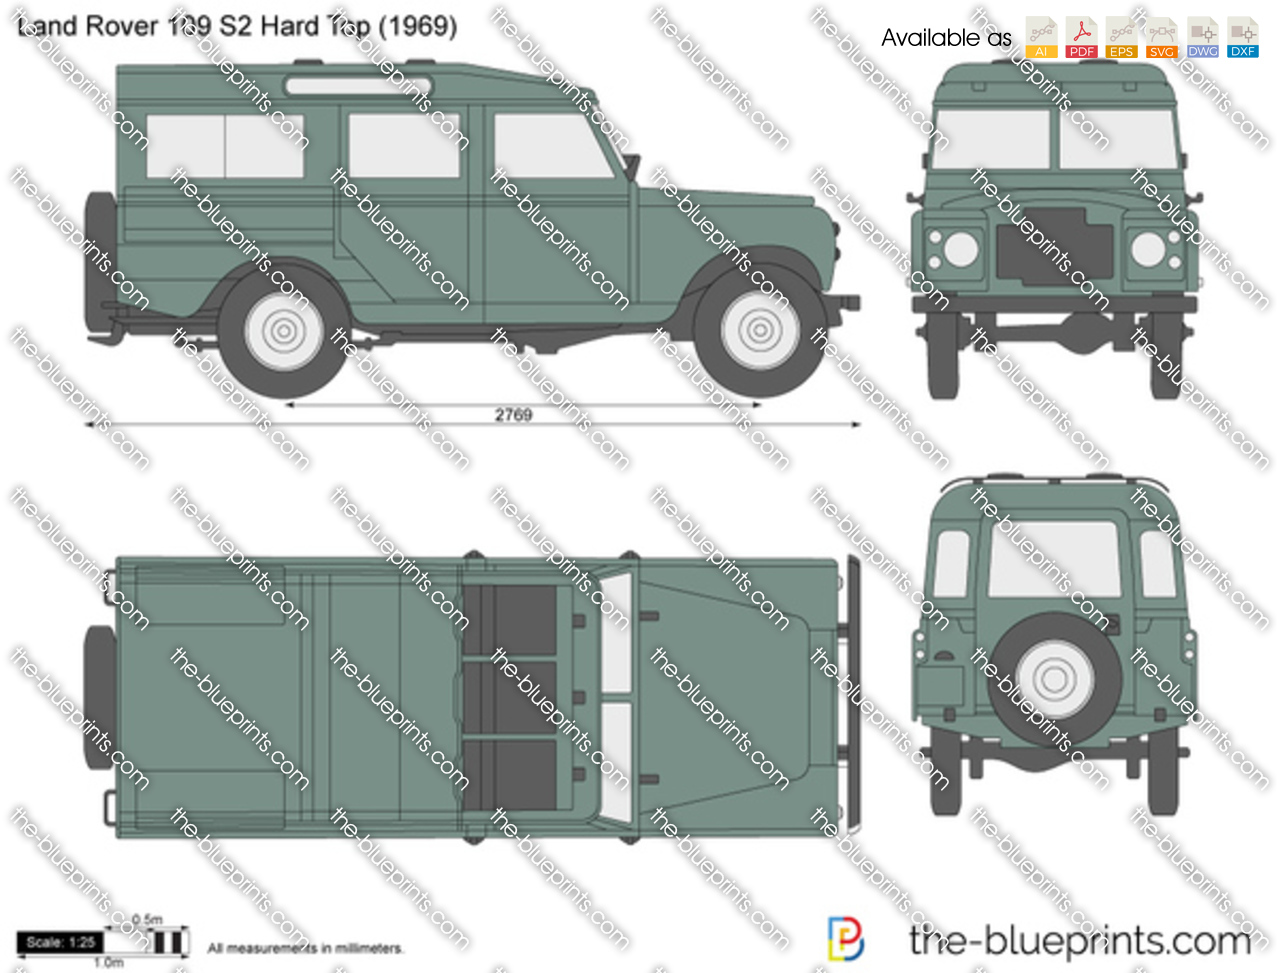 Land Rover 109 S2 Hard Top 1968